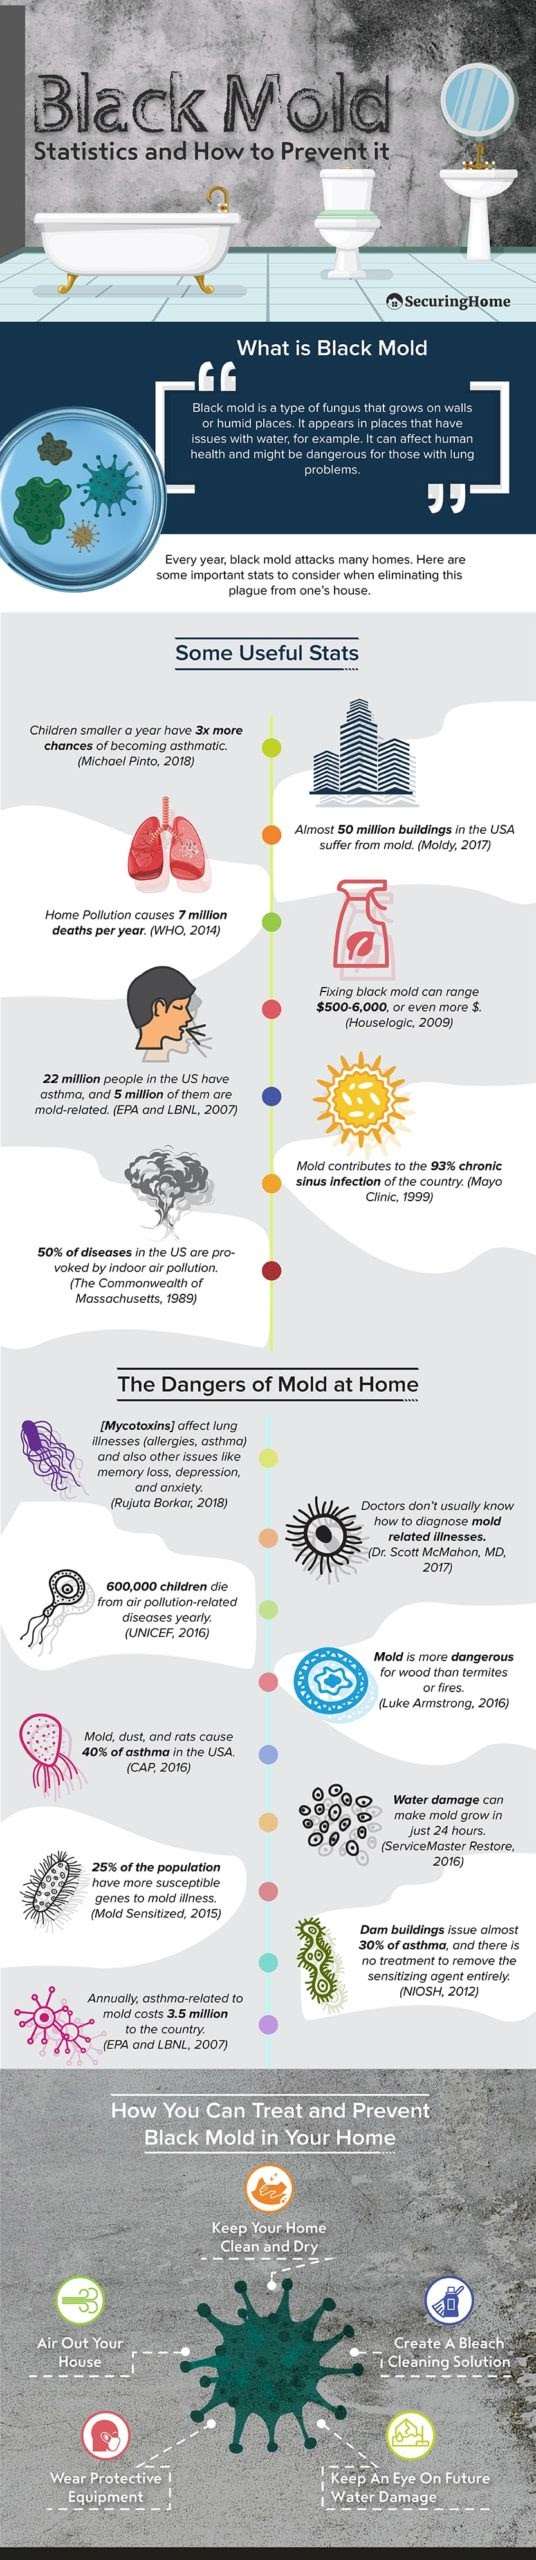 How to Get Rid of Black Mold #infographic